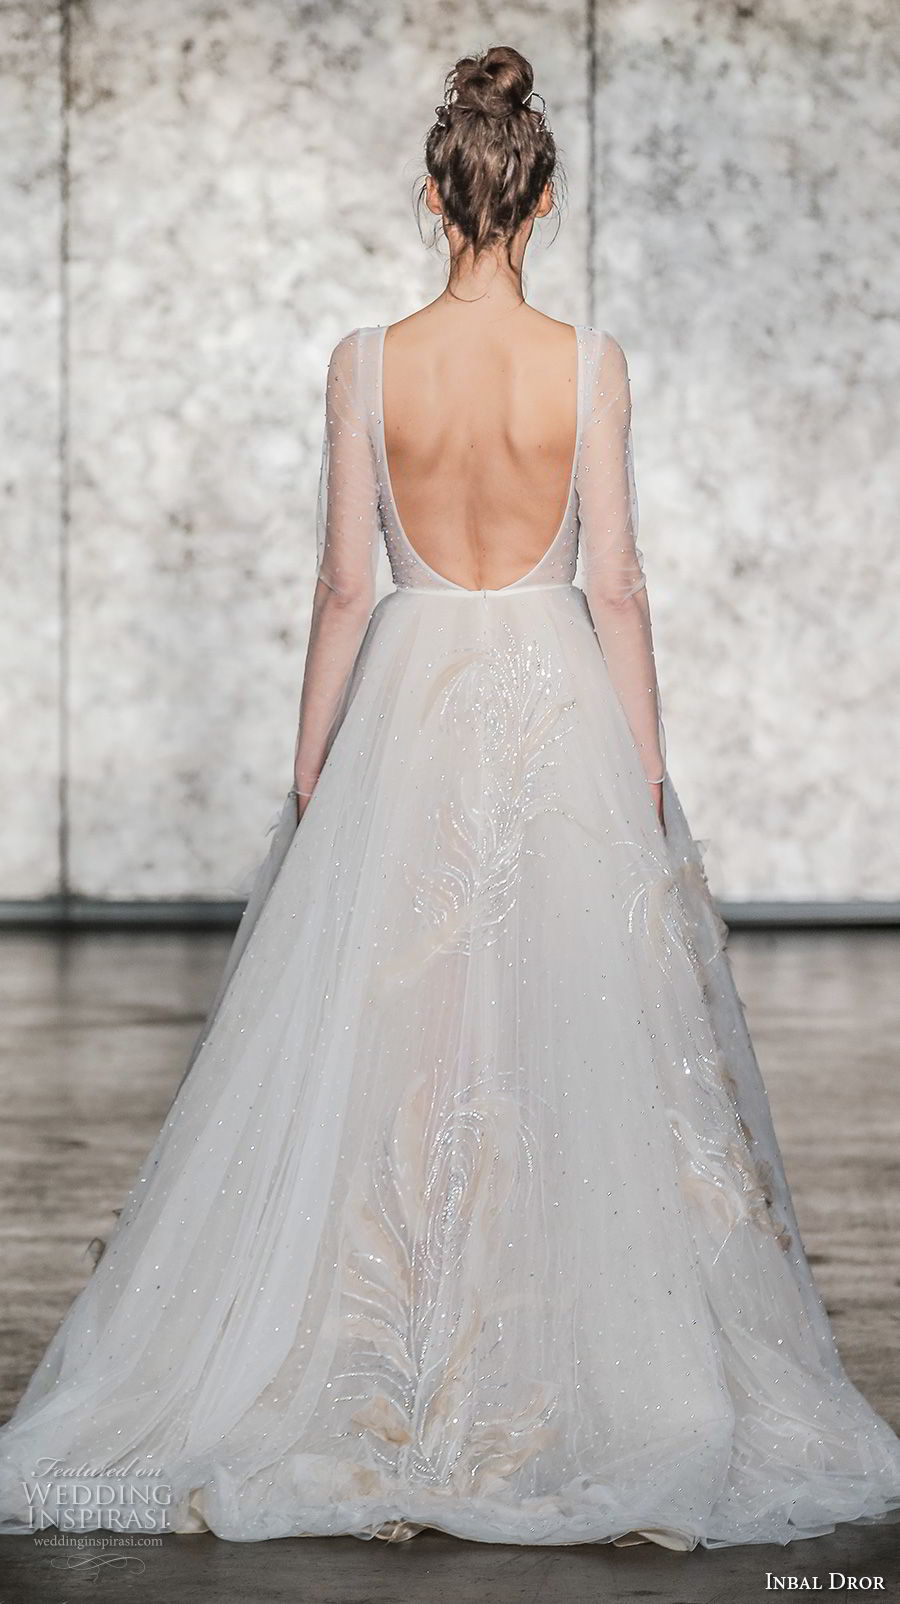 Inbal Dror Fall 2018 New York Bridal Runway Show Wedding